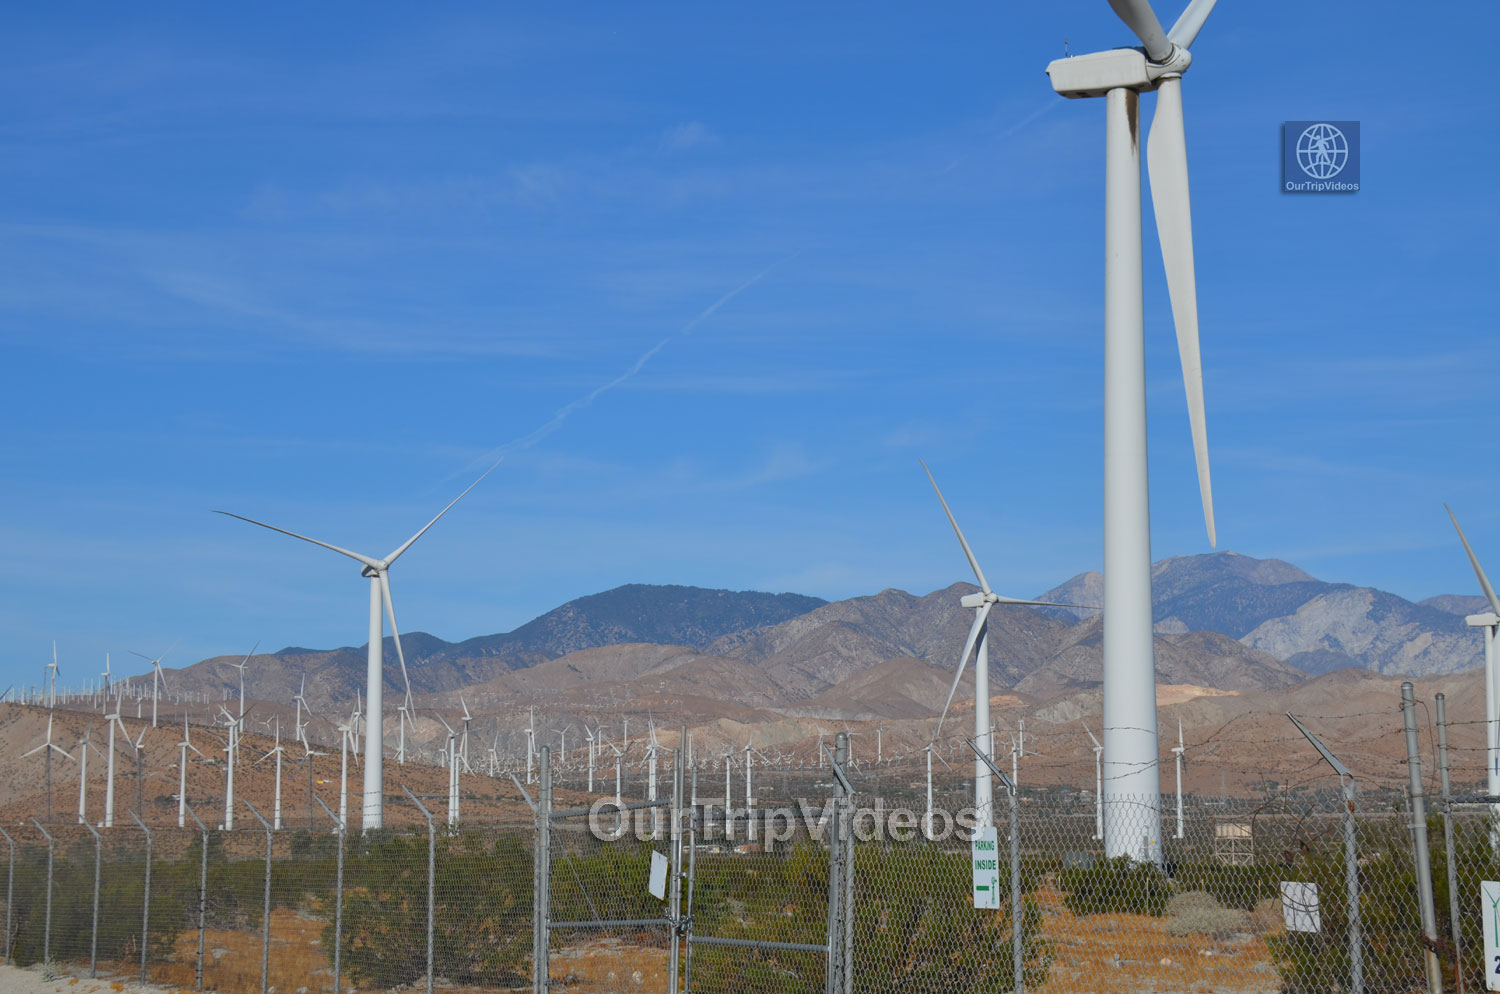 Windmill Tour, Palm Springs, CA, USA - Picture 7 of 25